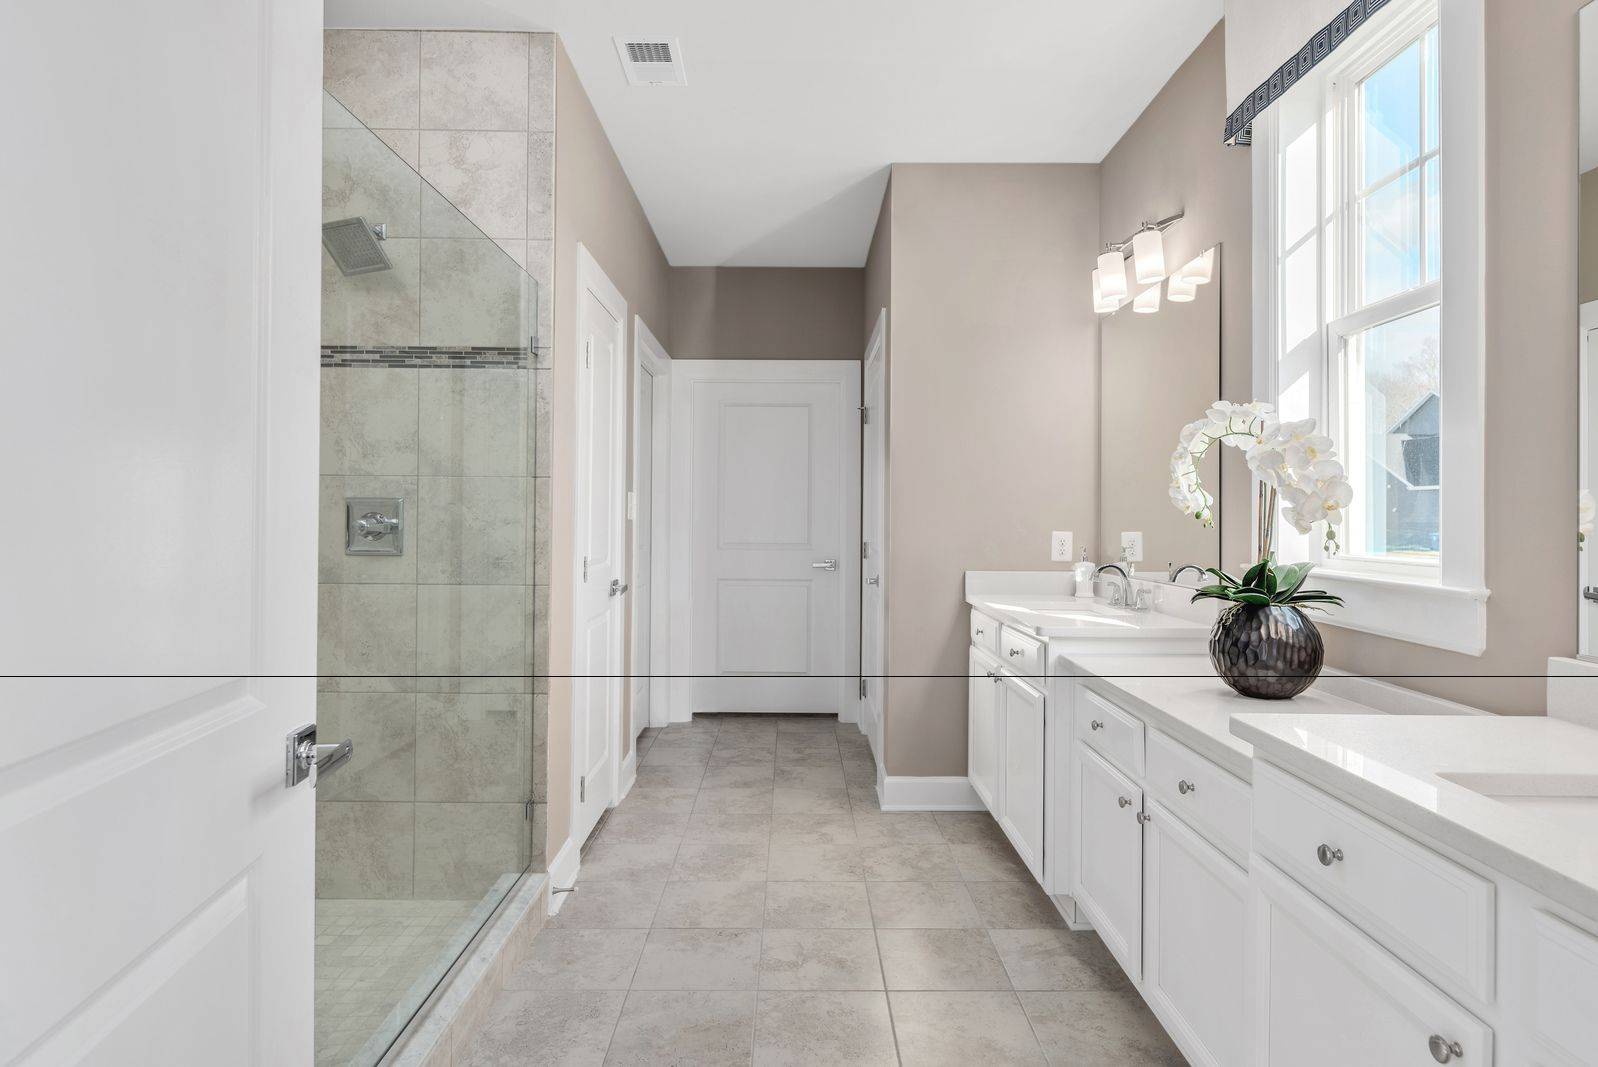 Bathroom featured in the Edgewood By NVHomes in Sussex, DE